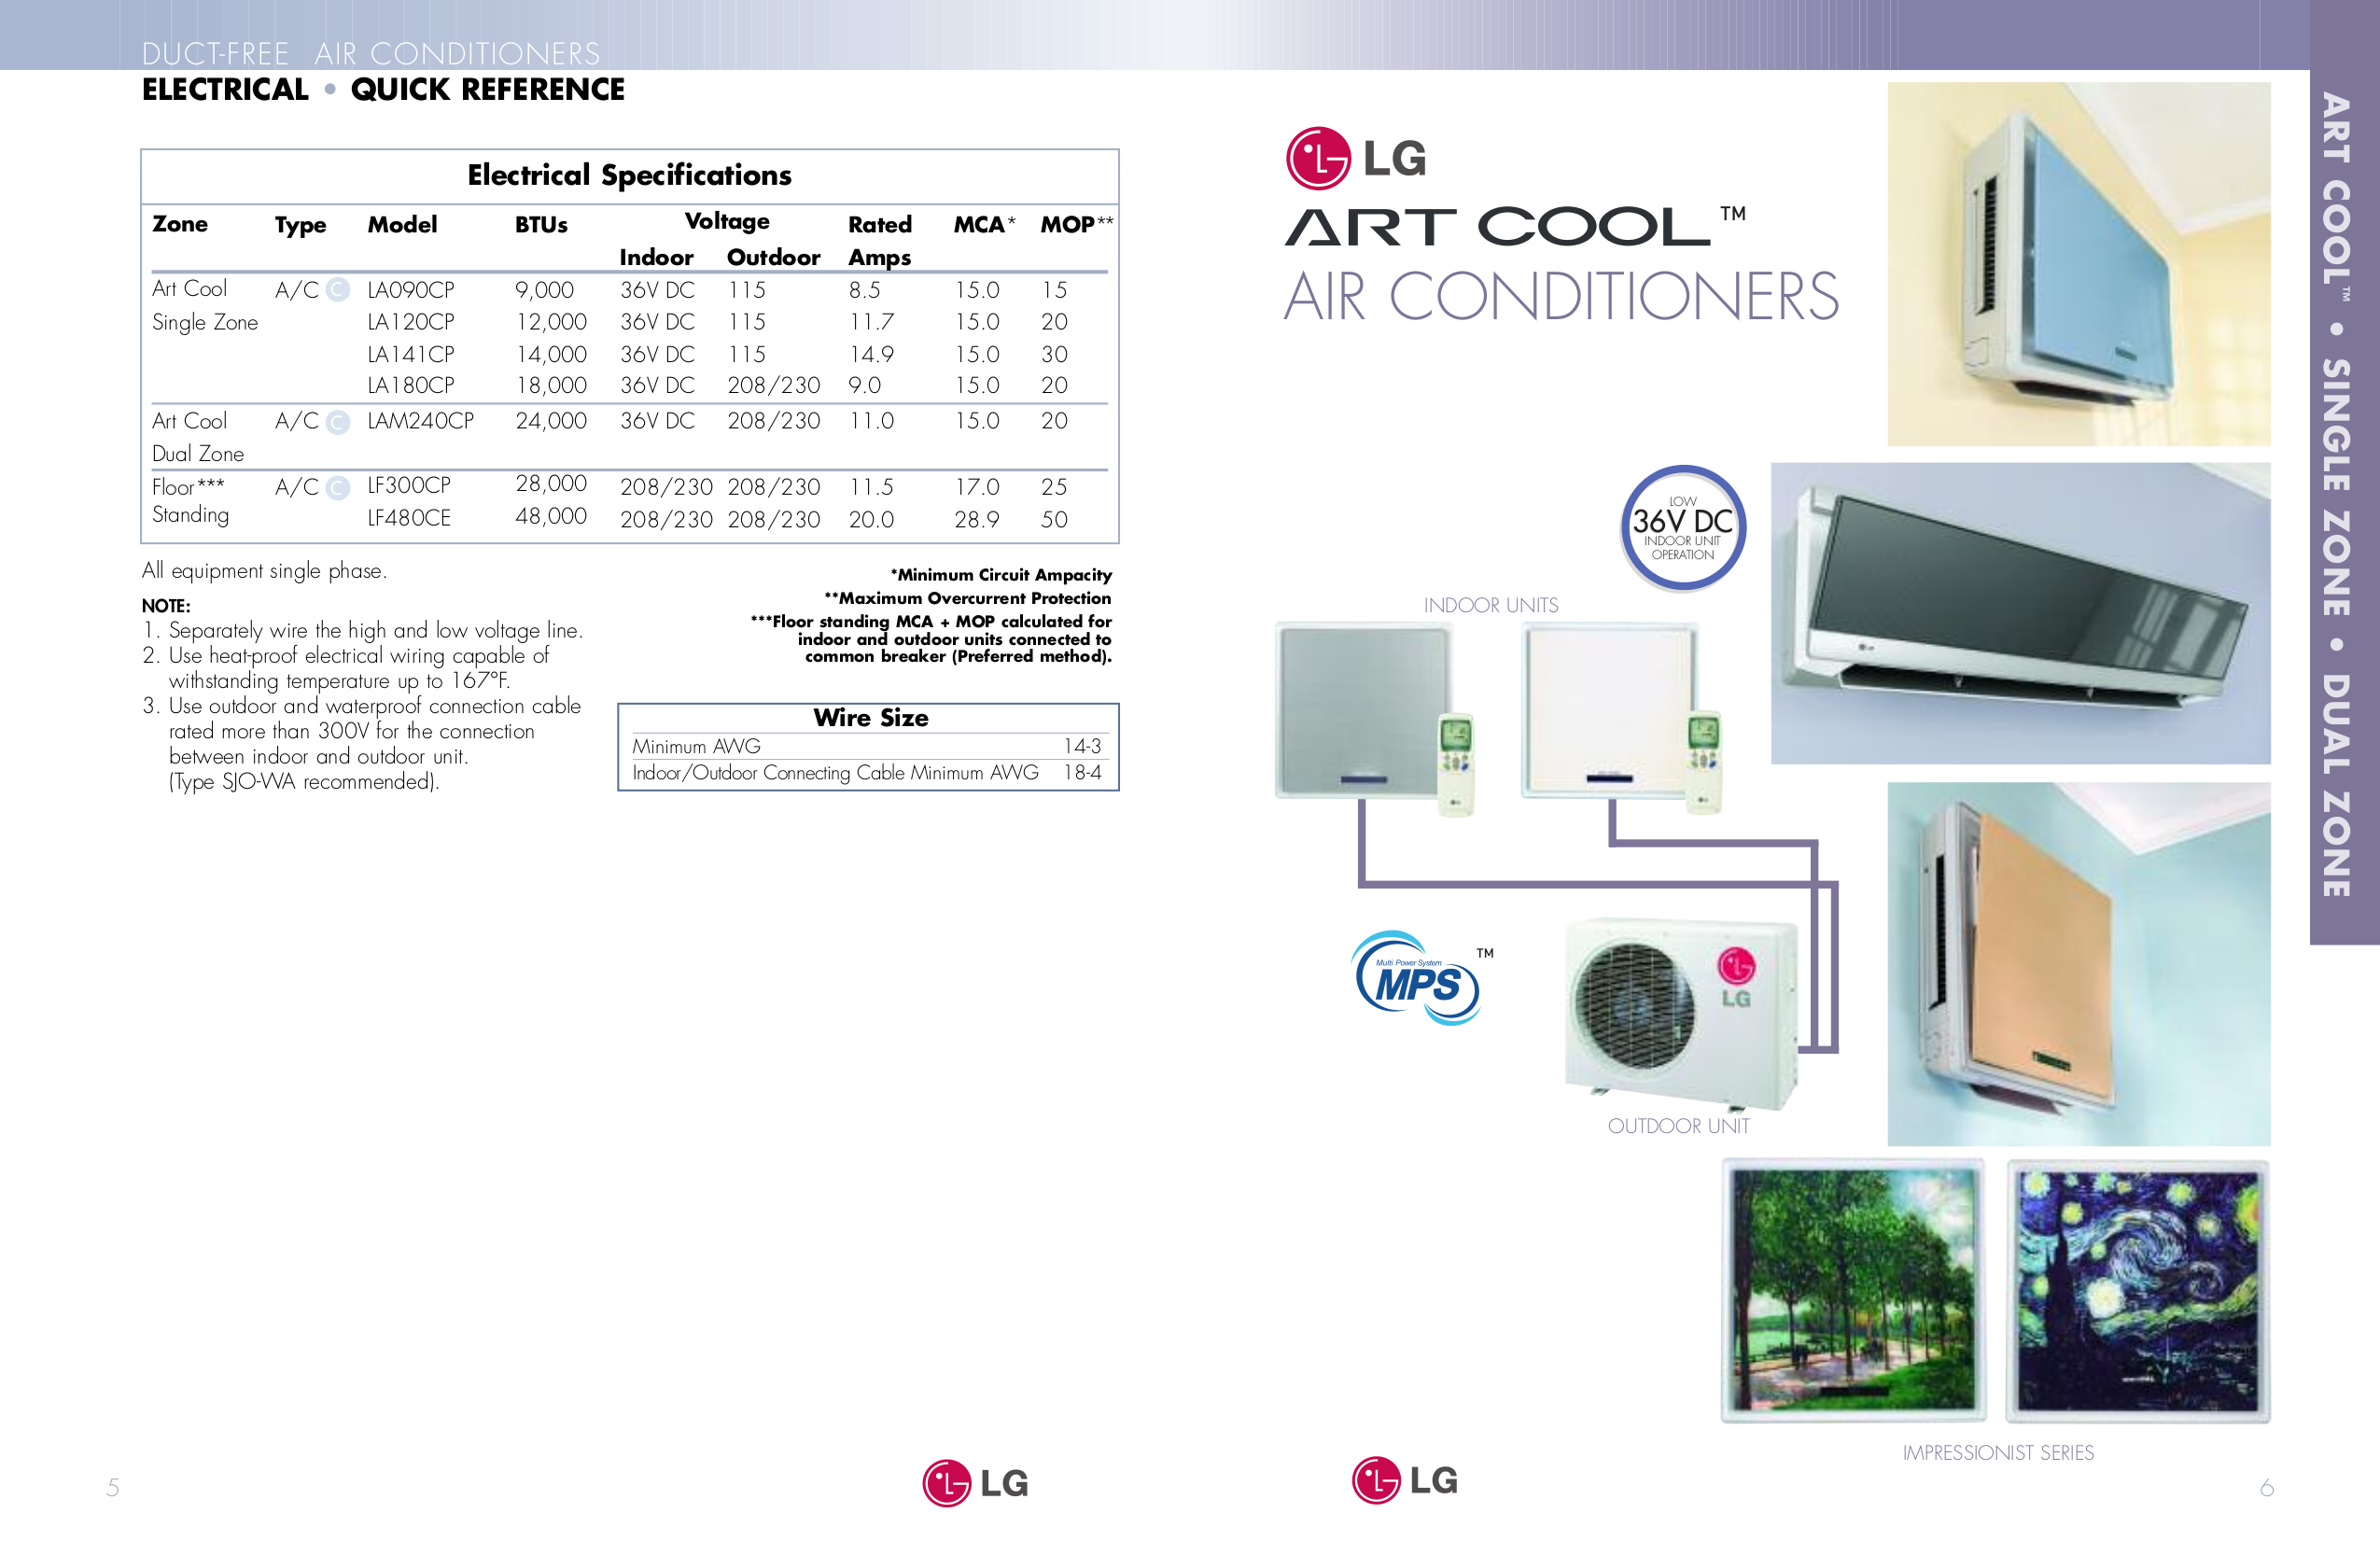 pdf manual for lg air conditioner art cool la120cp. Black Bedroom Furniture Sets. Home Design Ideas